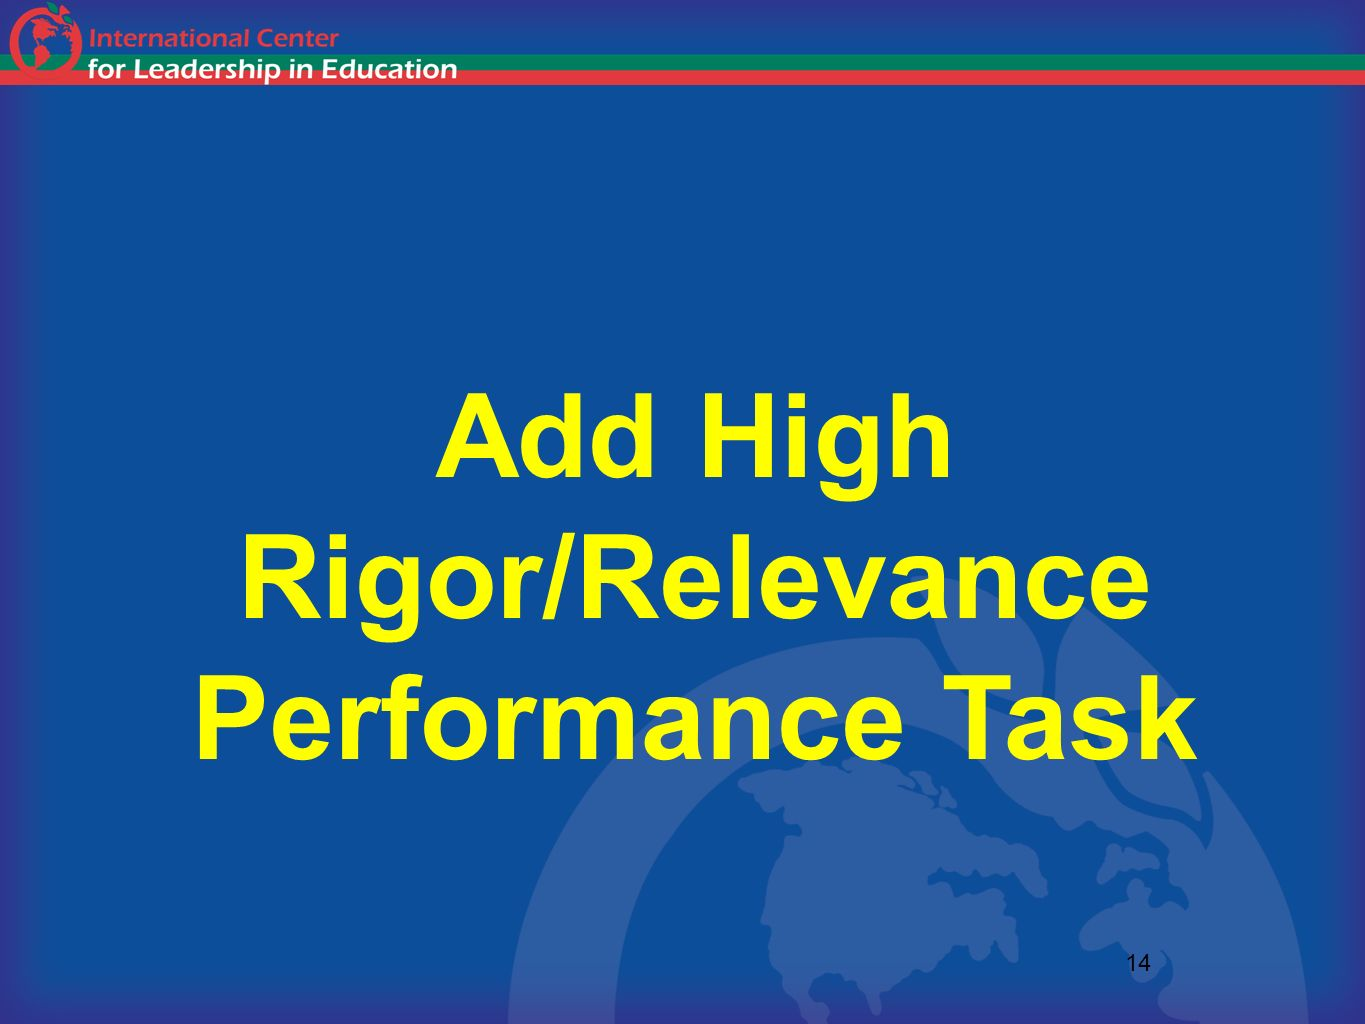 Add High Rigor/Relevance Performance Task